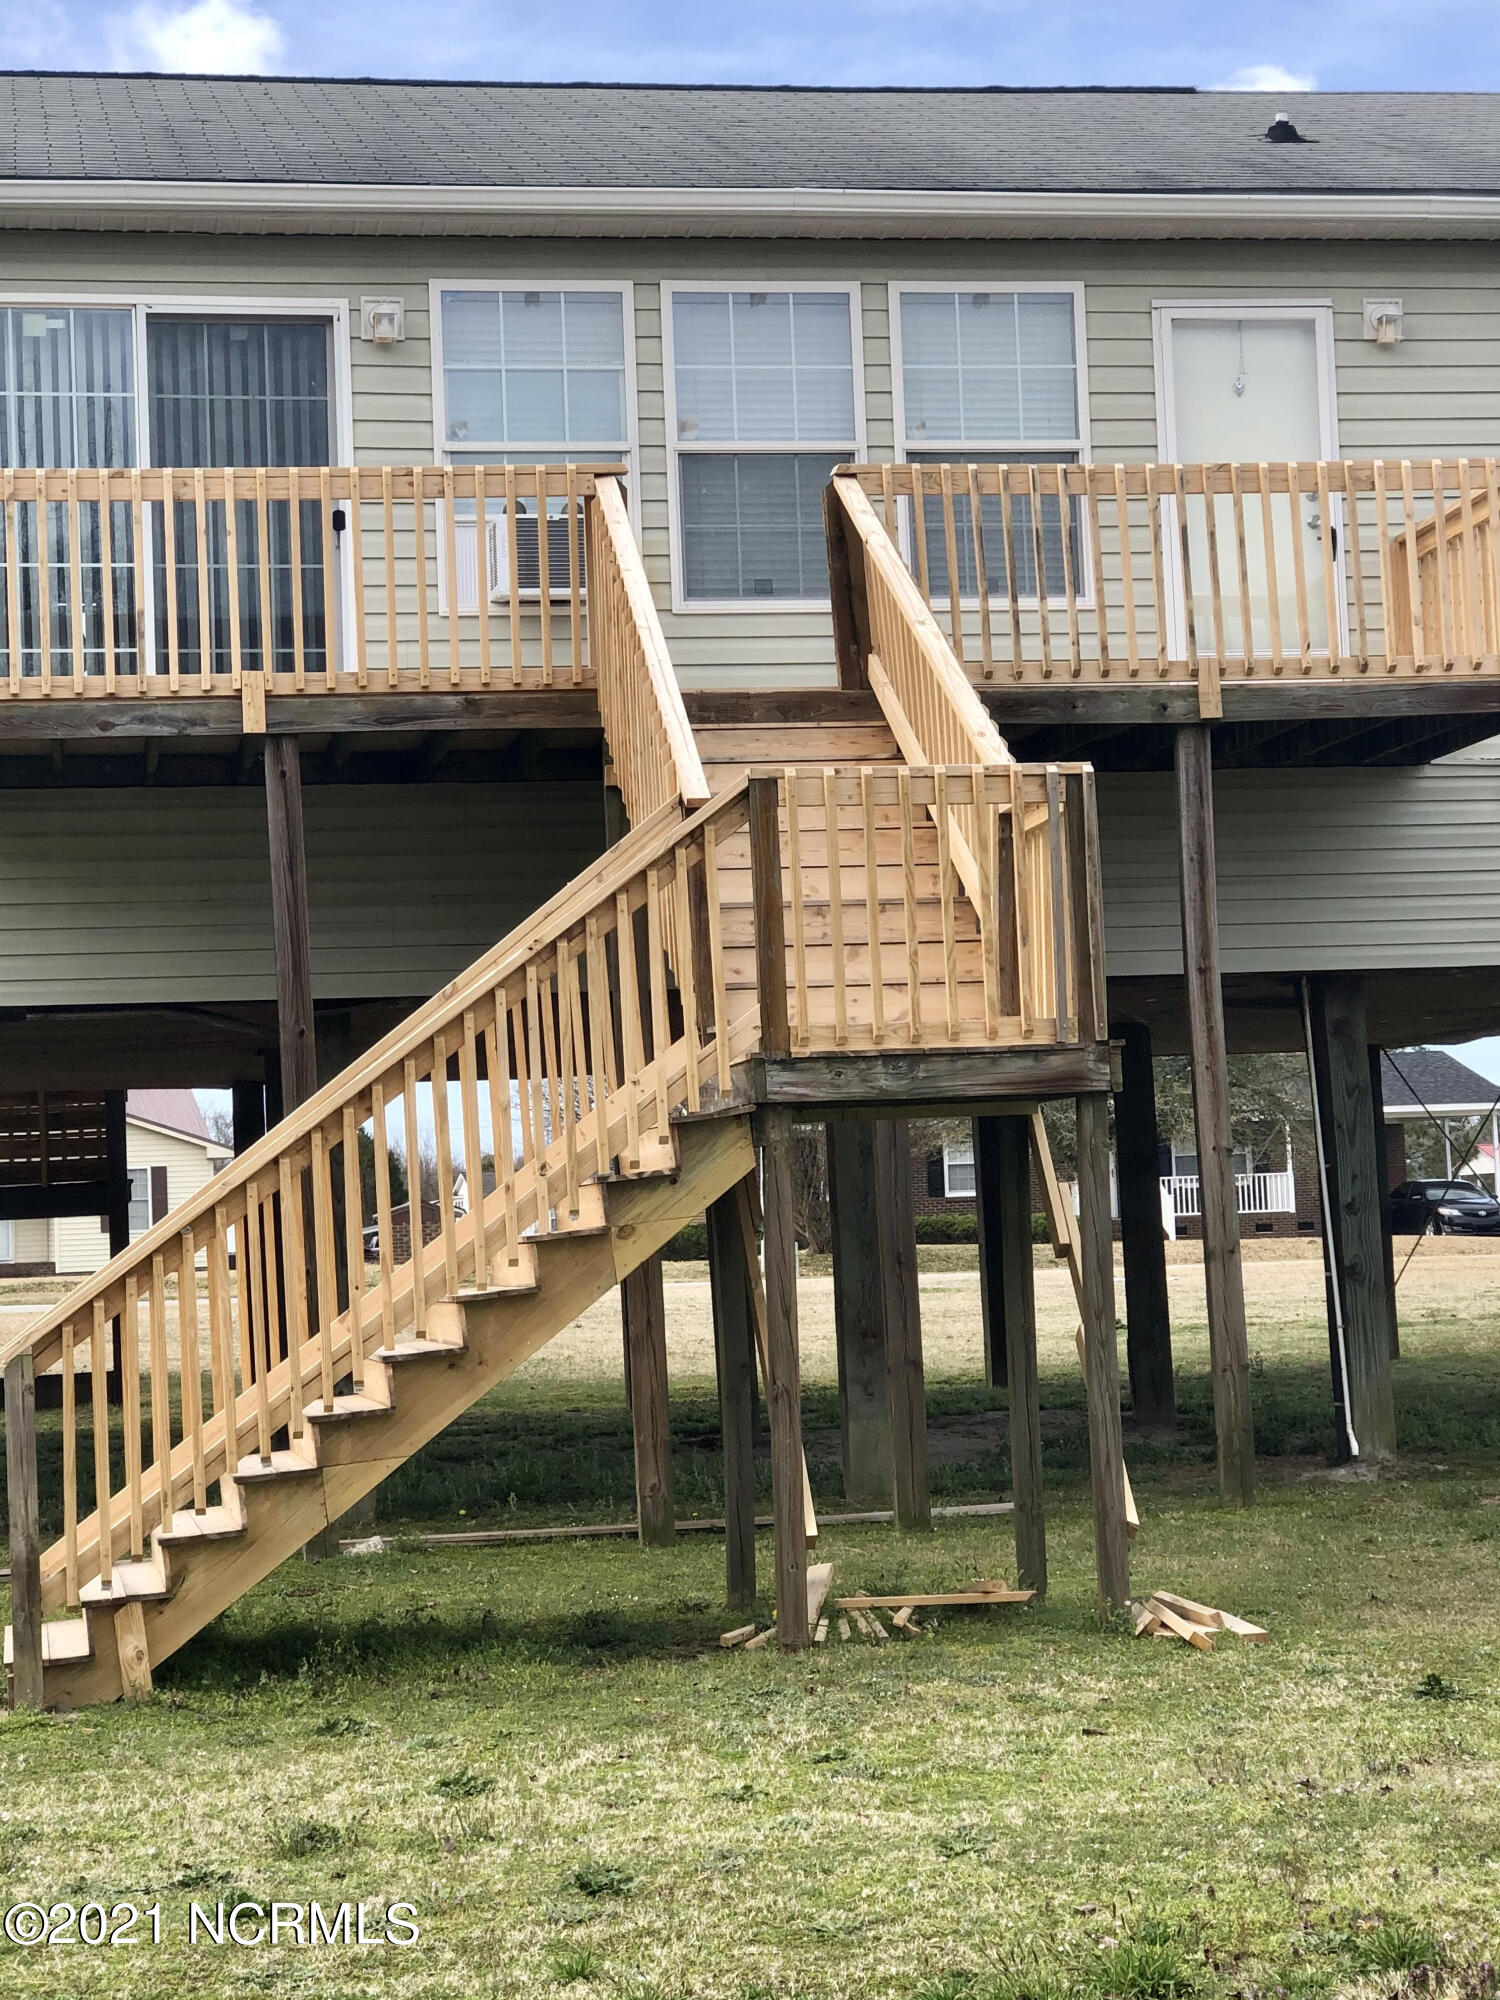 153 Quincy Drive, Tarboro, North Carolina 27886, 3 Bedrooms Bedrooms, 5 Rooms Rooms,2 BathroomsBathrooms,Single family residence,For sale,Quincy,100263947